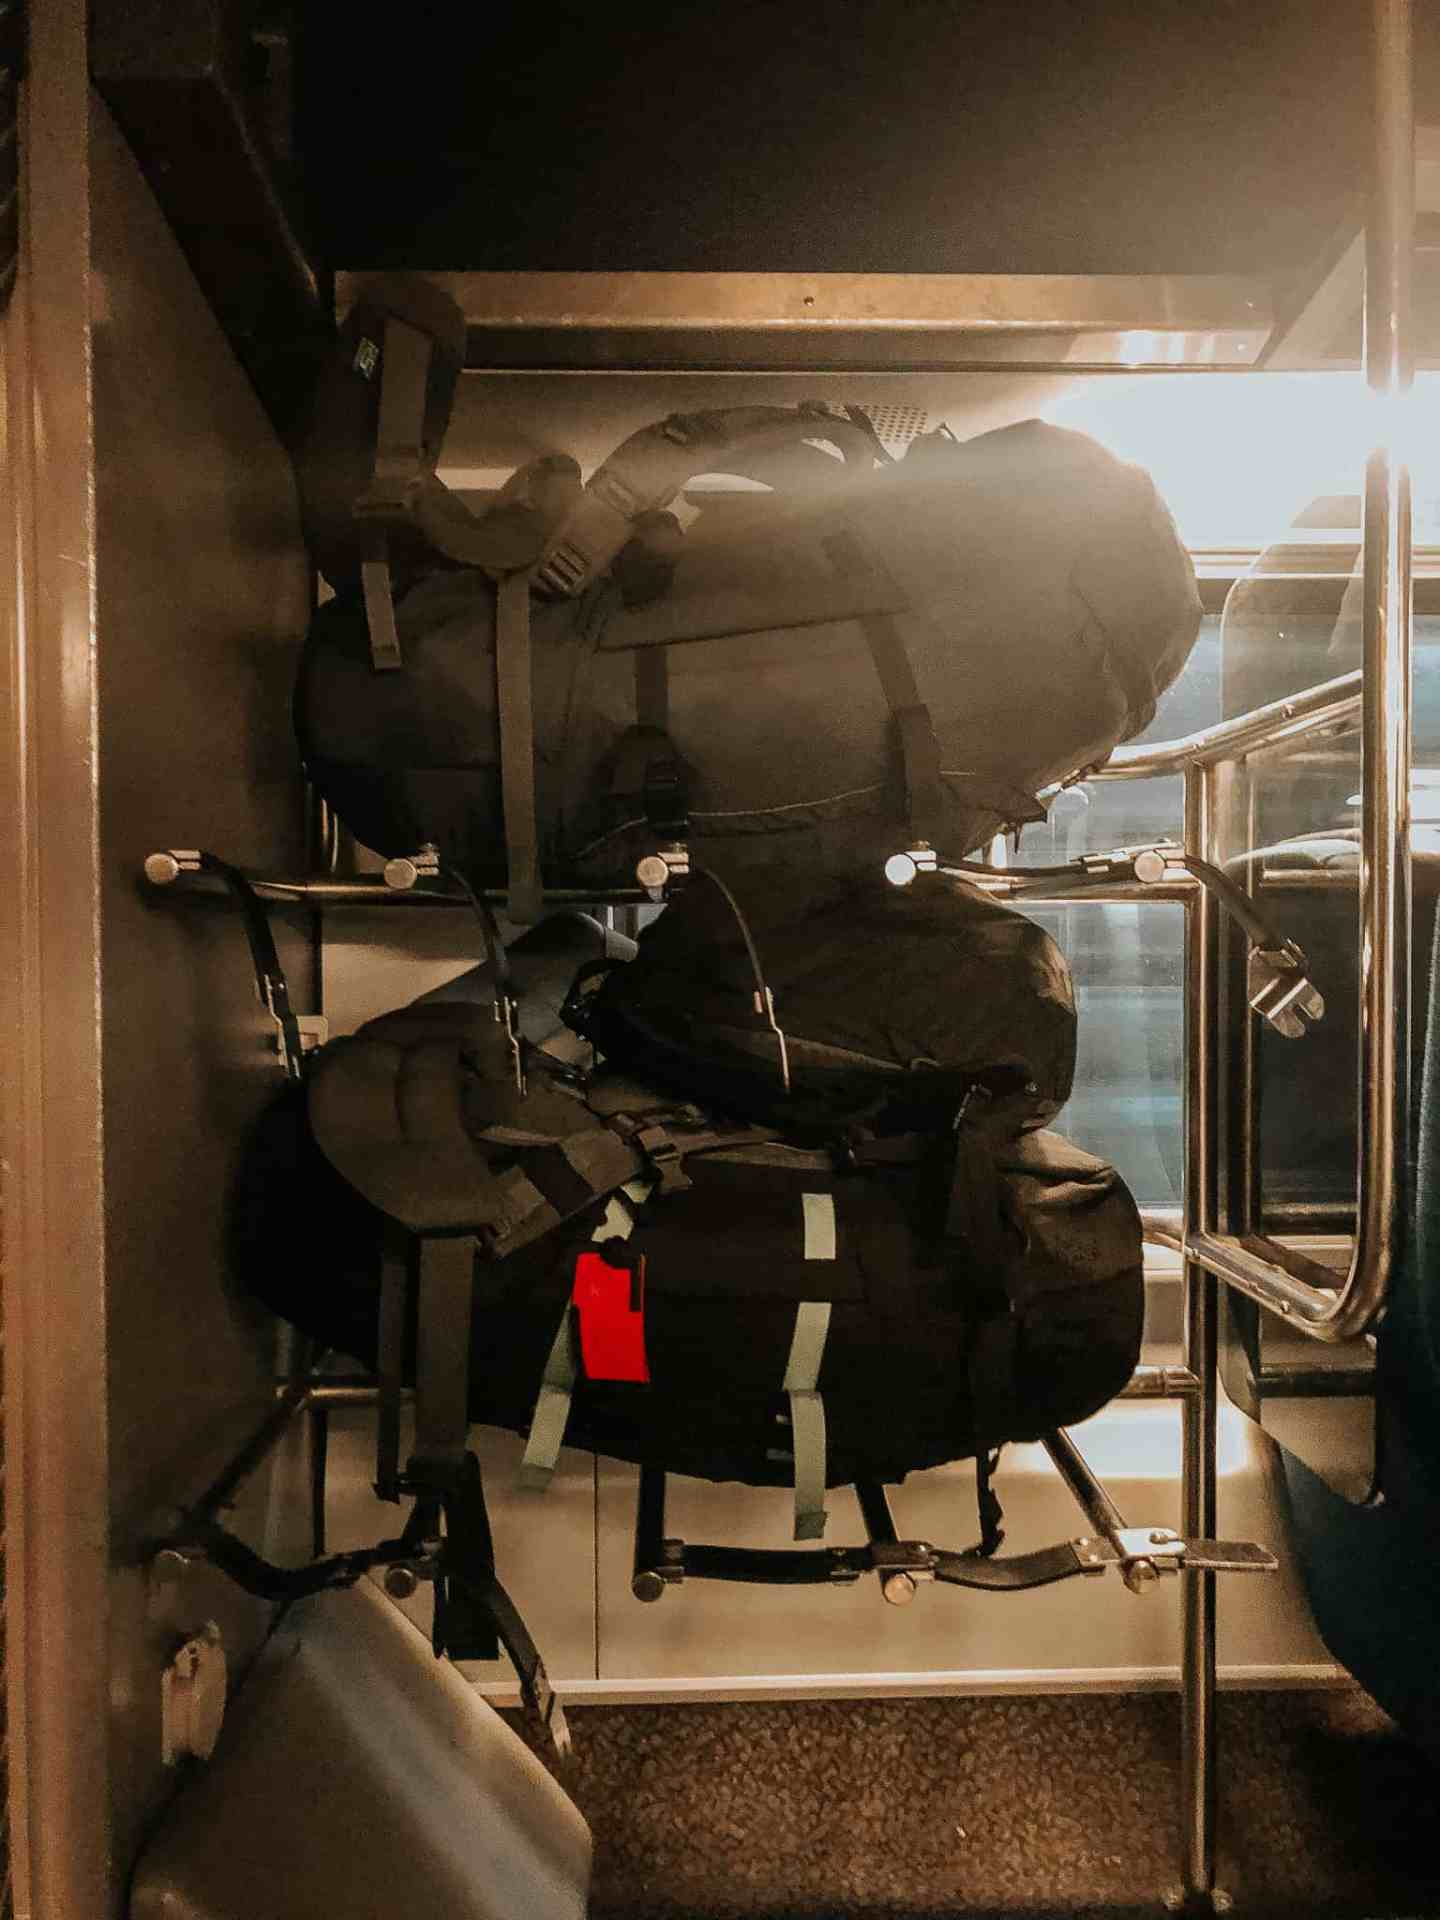 Two large backpacks sitting in a luggage rack